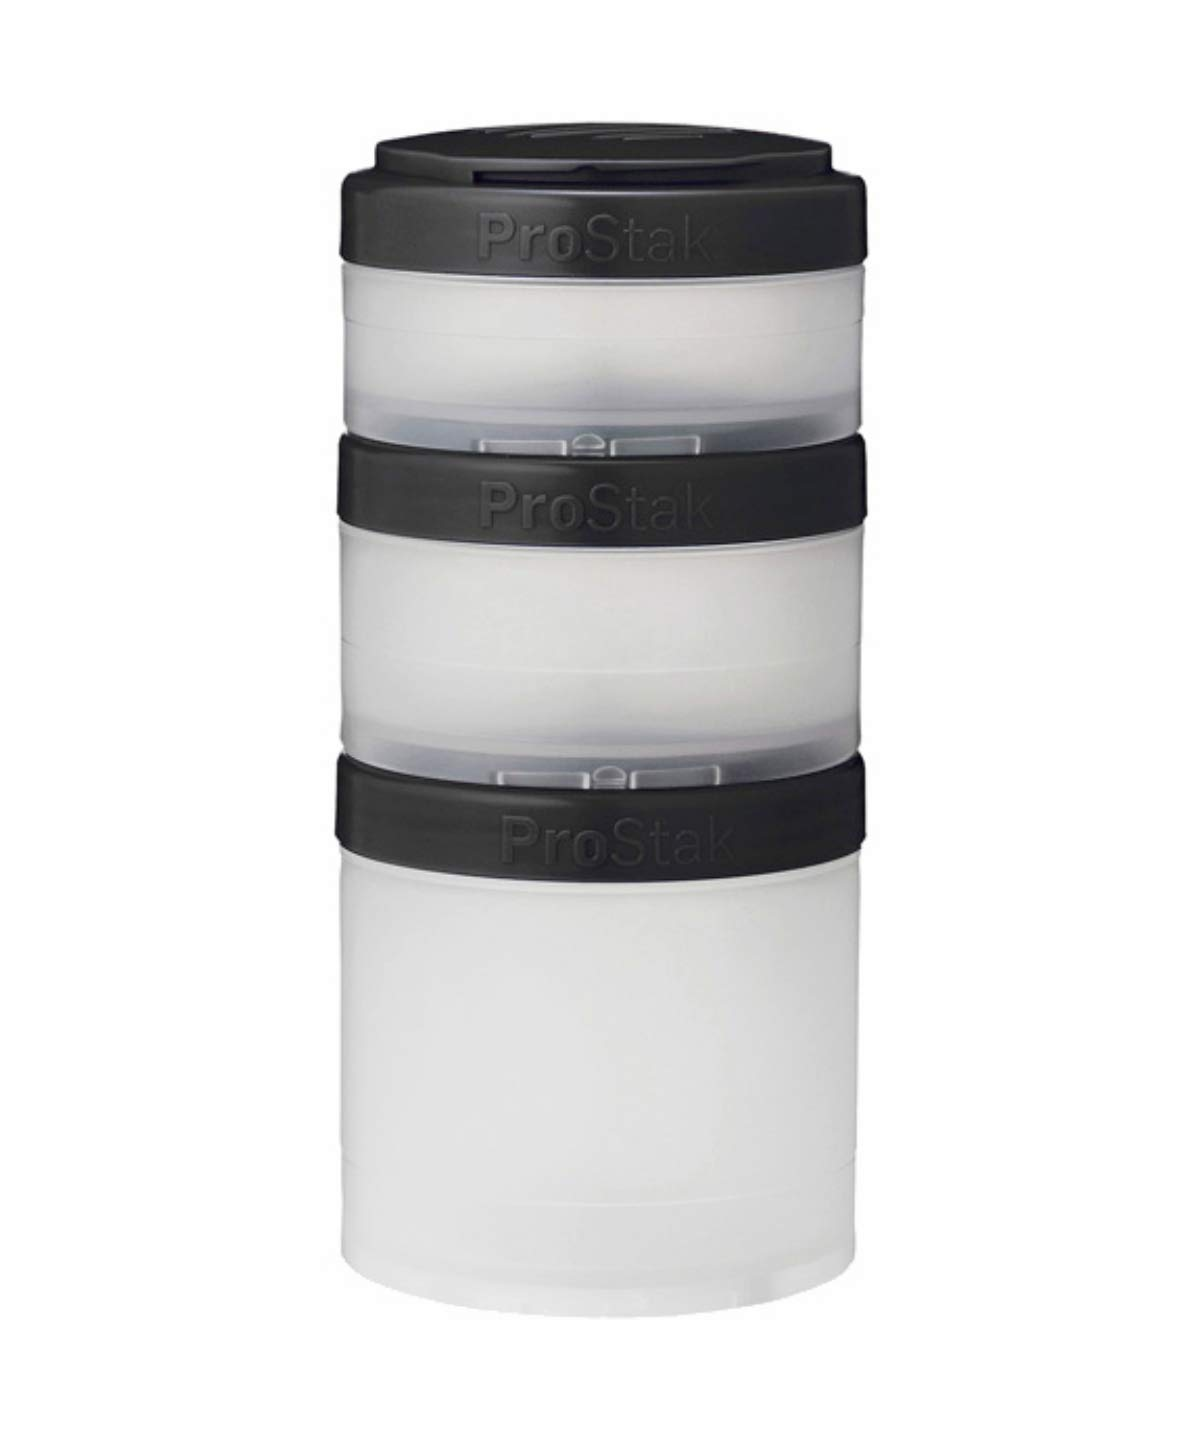 Pill Tray M Clear//Black BlenderBottle PRO Stak Expansion incl Workout Accessories Unisex